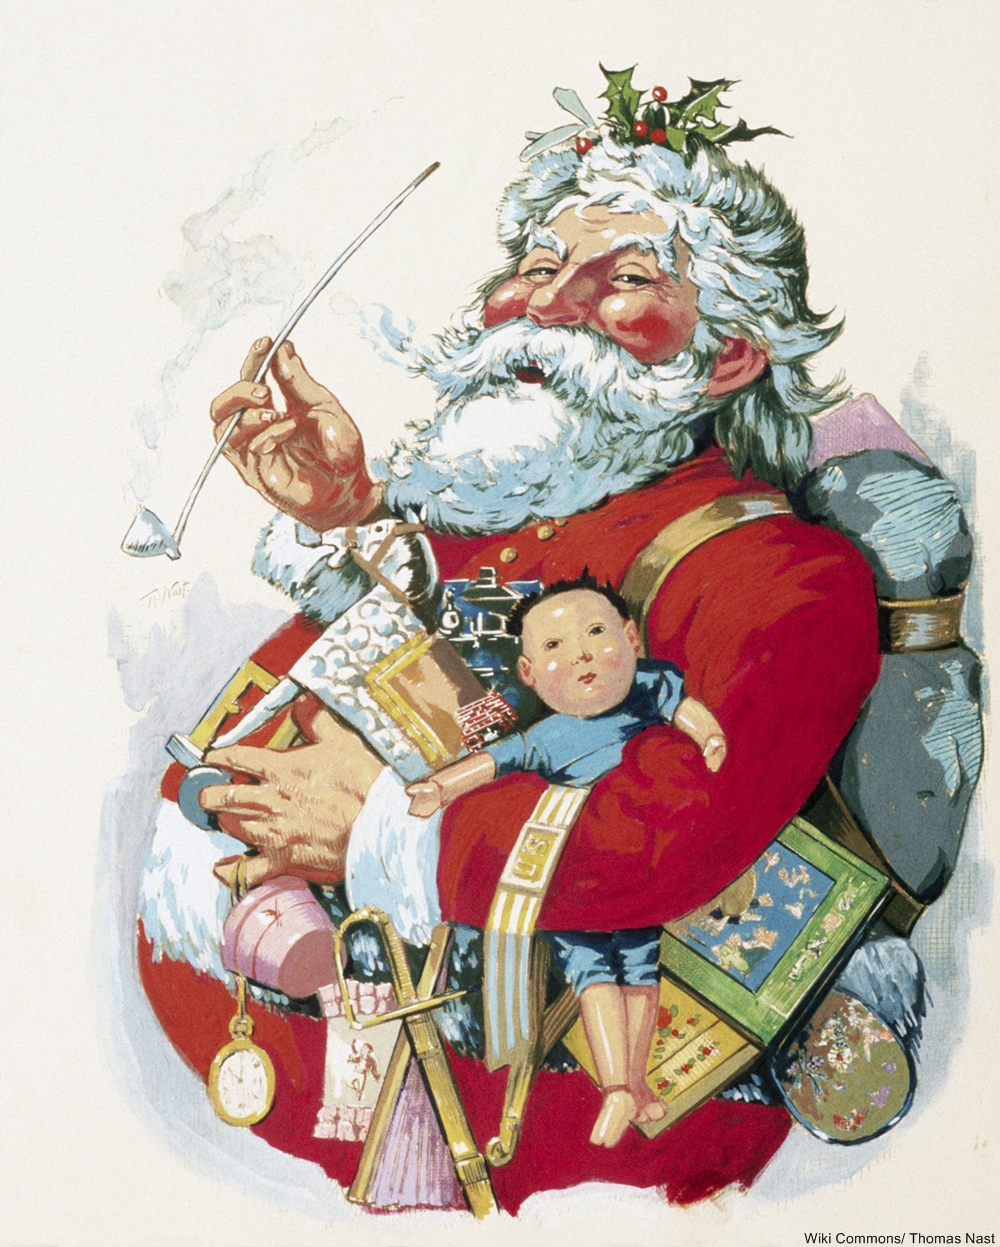 Thomas Nast 1863 Santa is an early example of what we now think of at Christmastime.